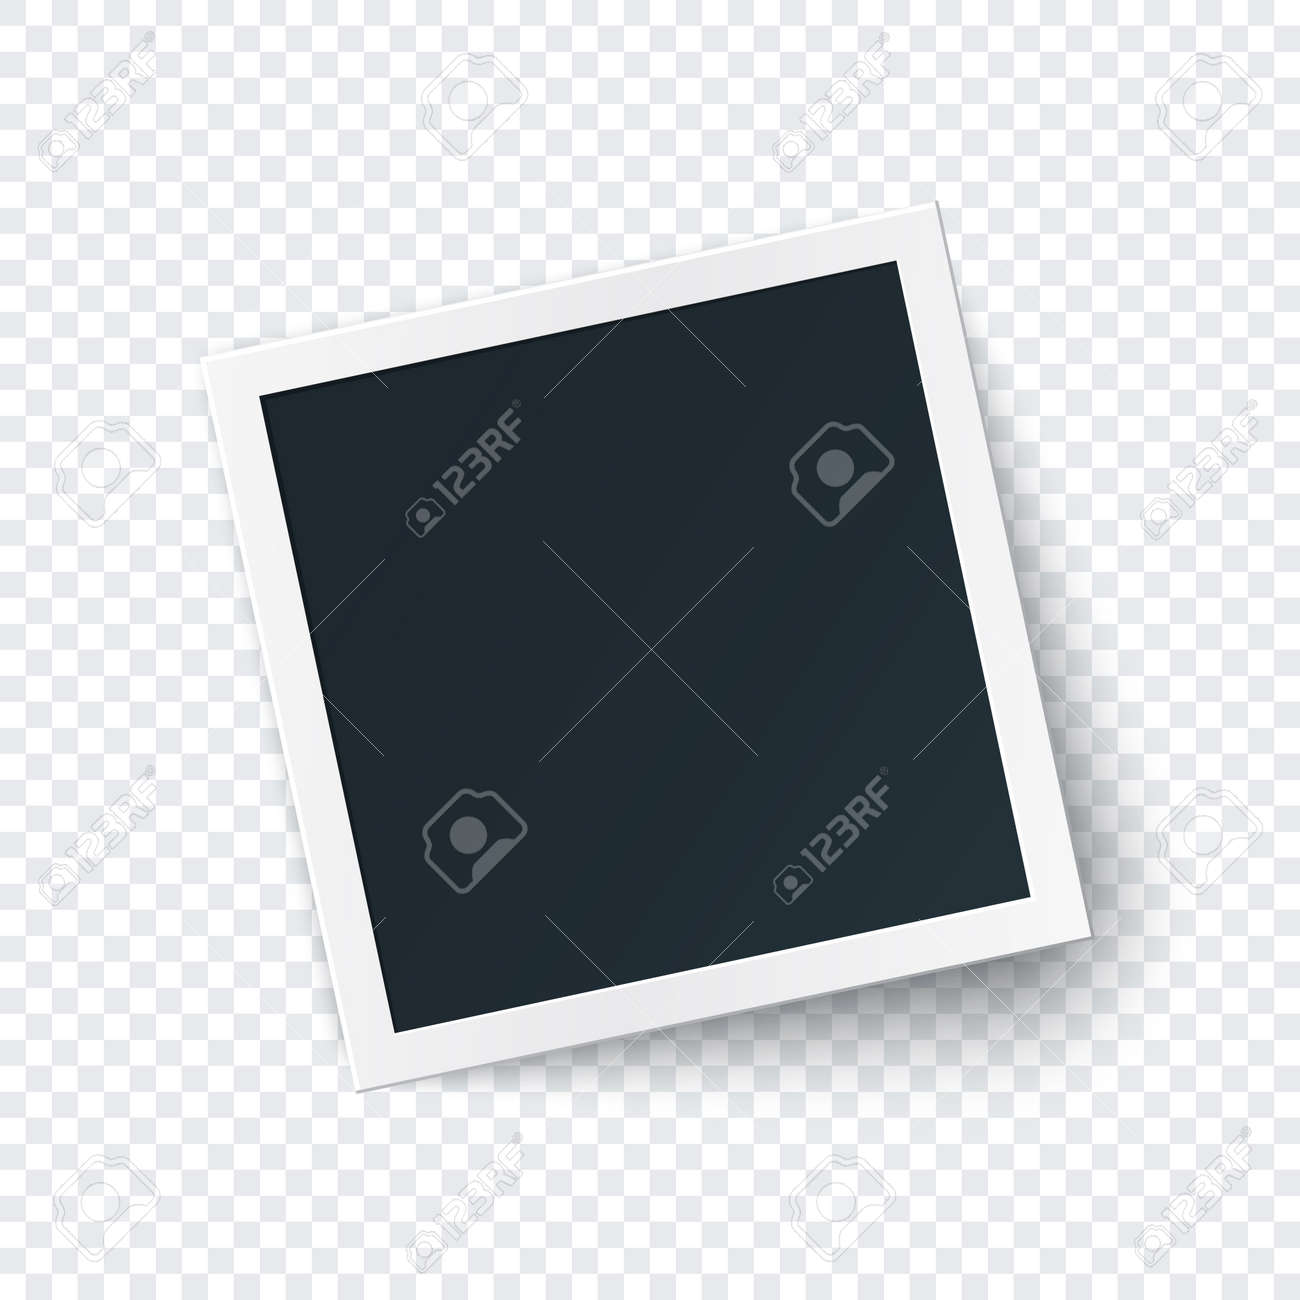 Retro photo frame image template, square photography isolated with big shadow in realistic style. - 141554872